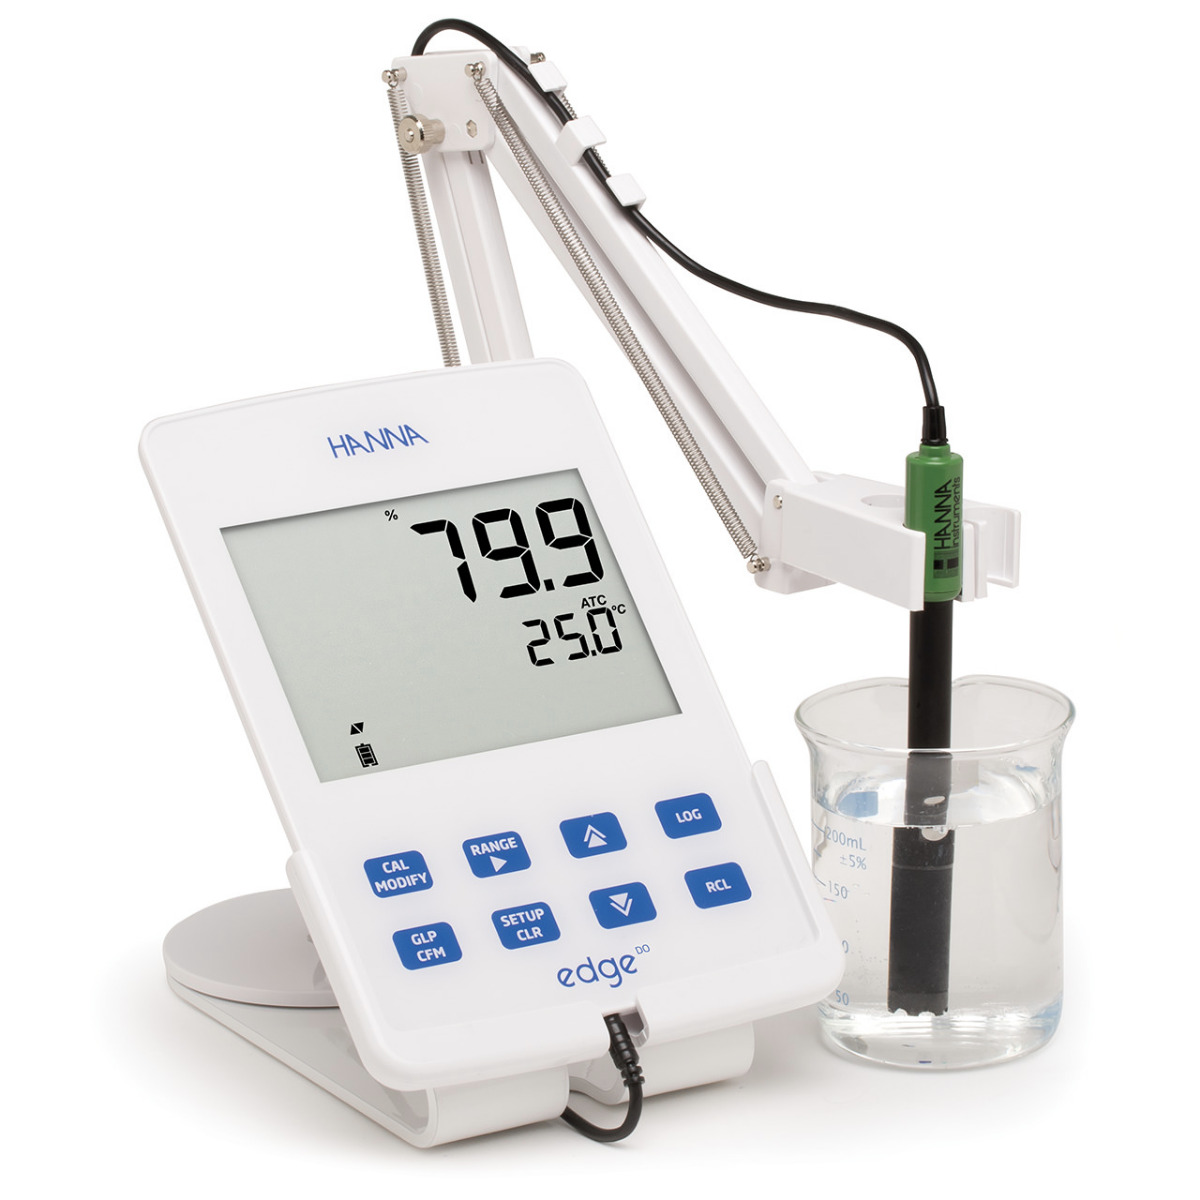 edge® Dedicated Dissolved Oxygen Meter - HI2004